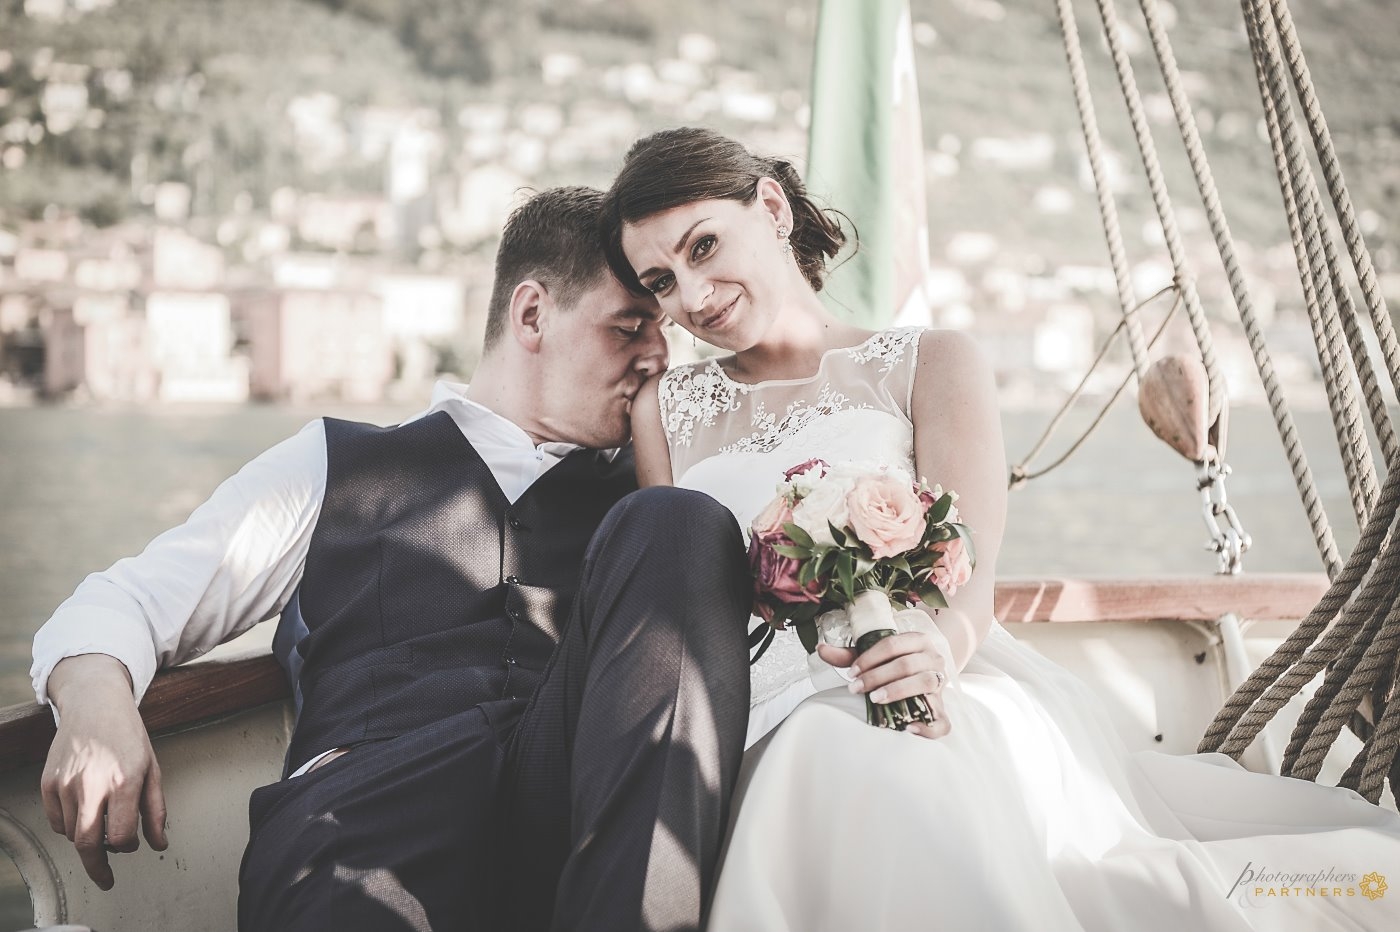 photography_weddings_malcesine_19.jpg